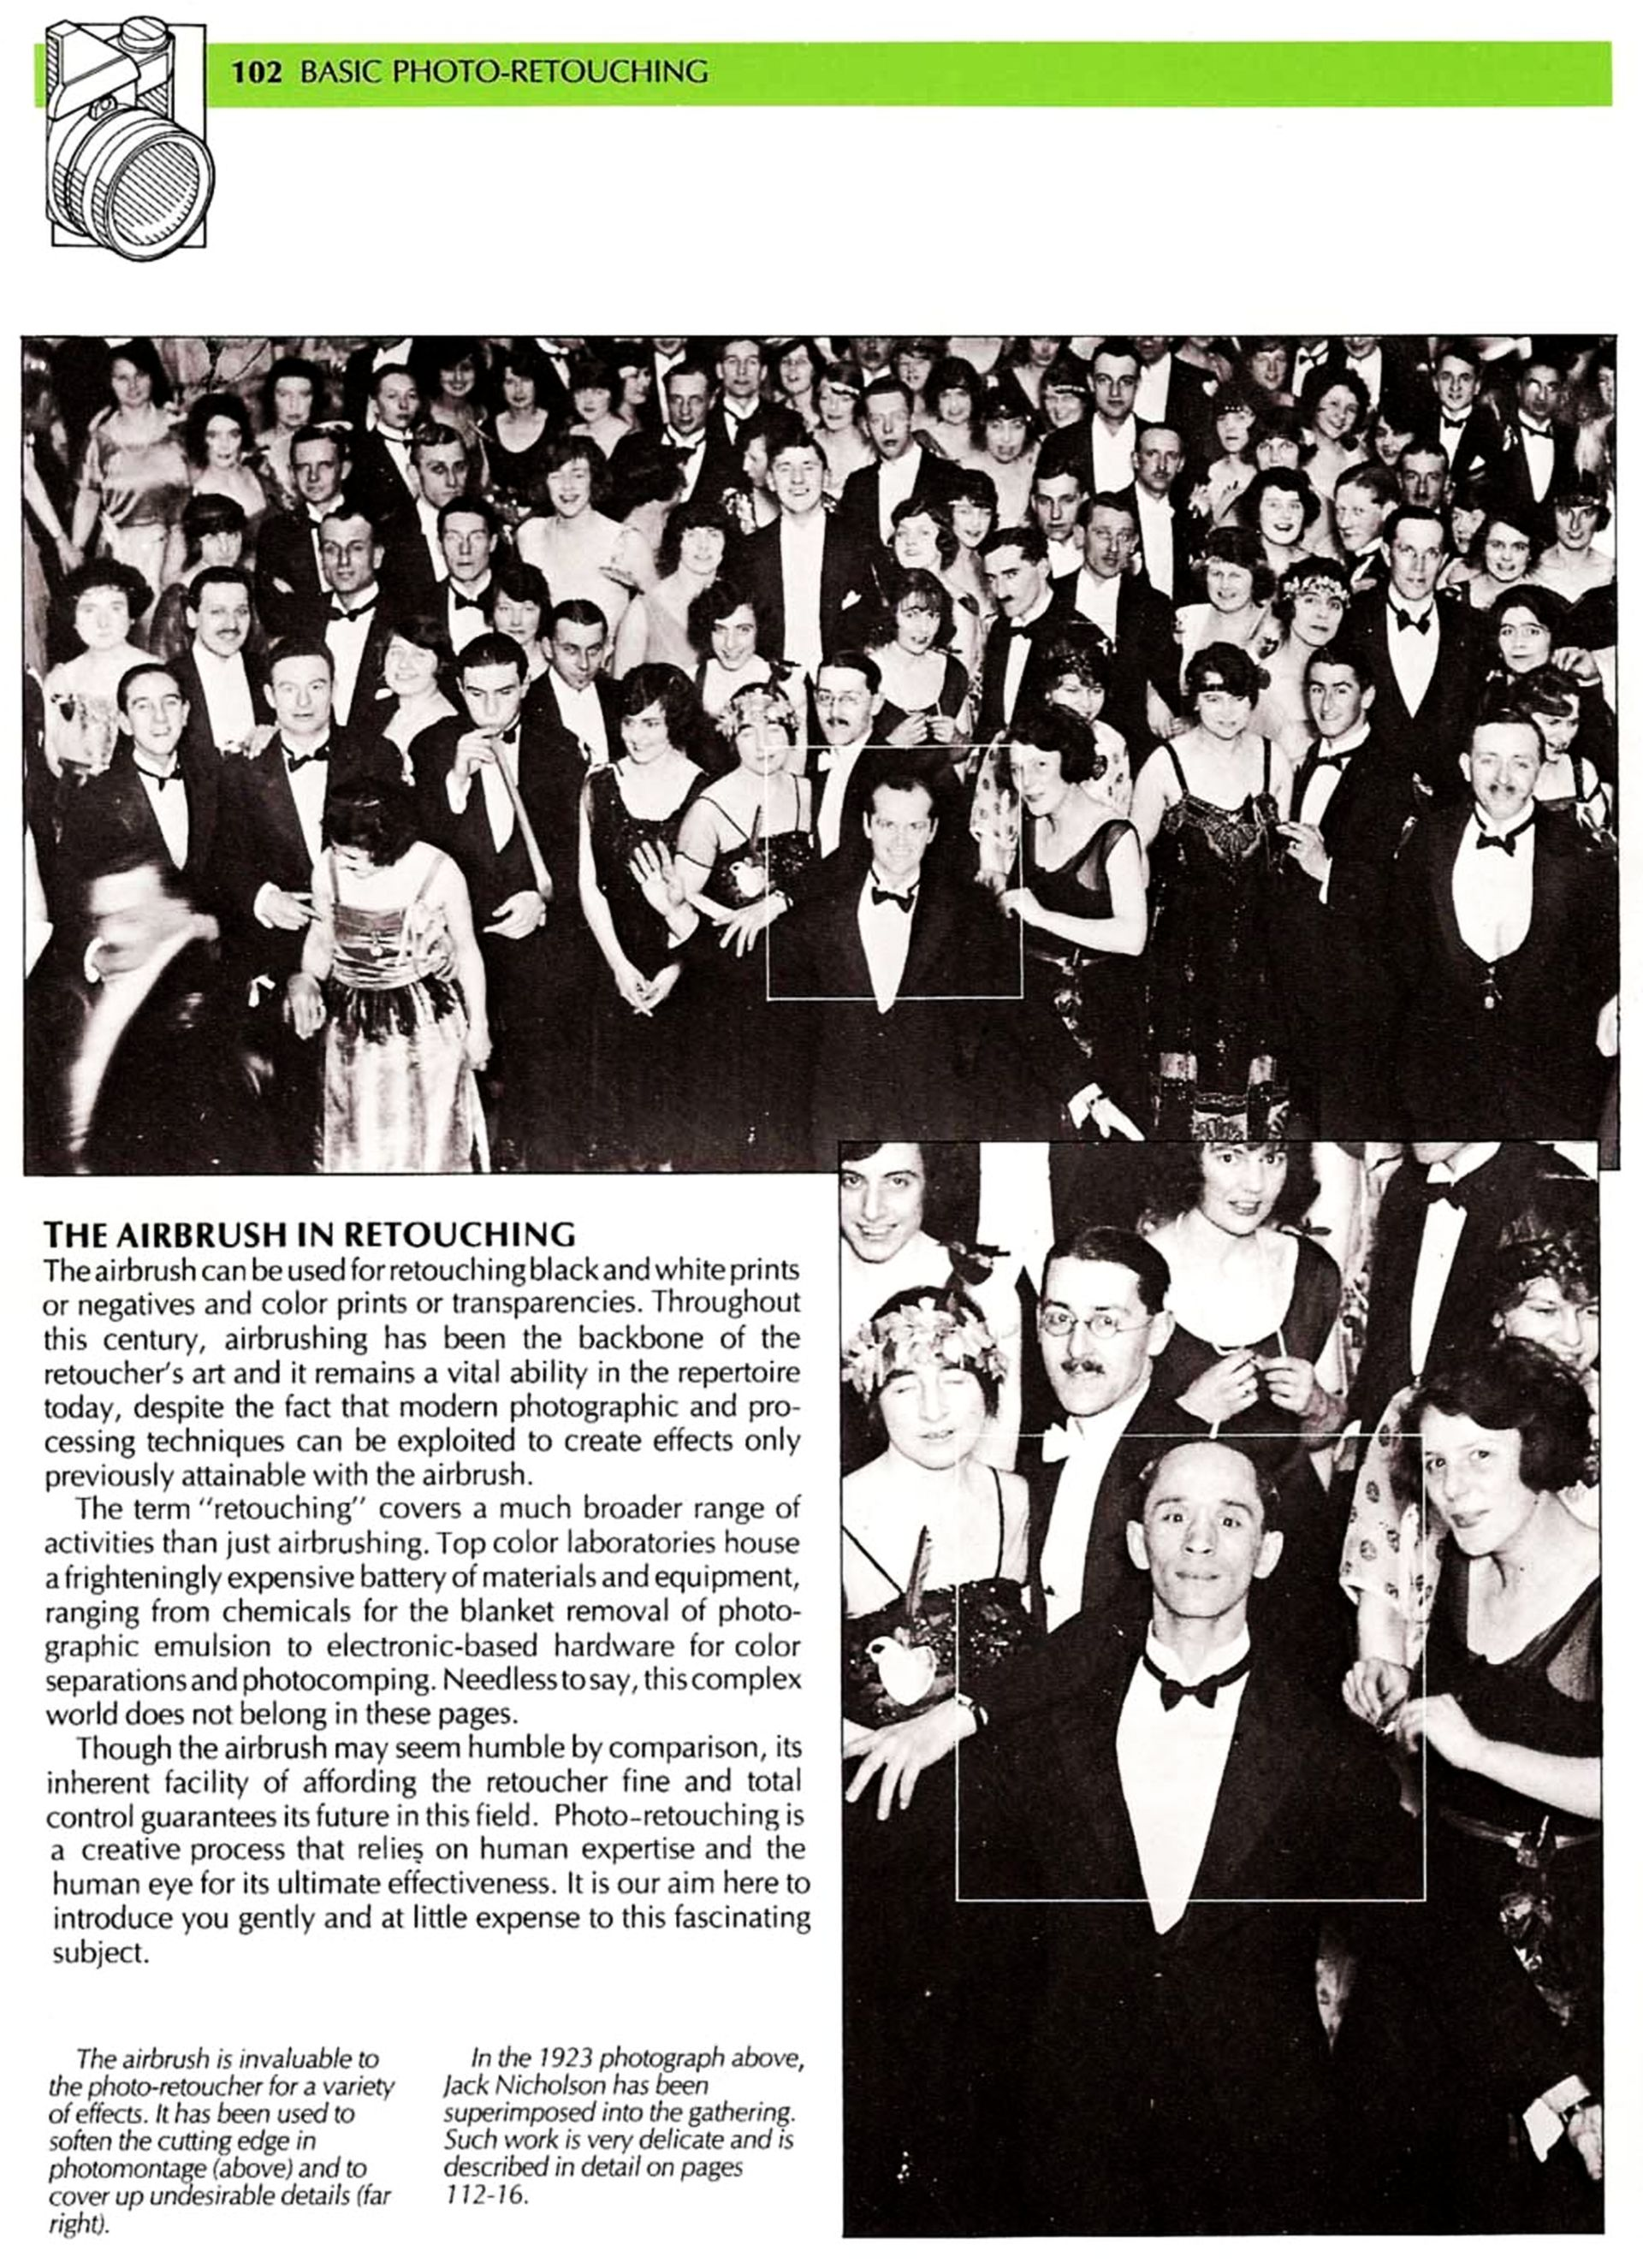 The Unaltered Ballroom Photo From The Shining The